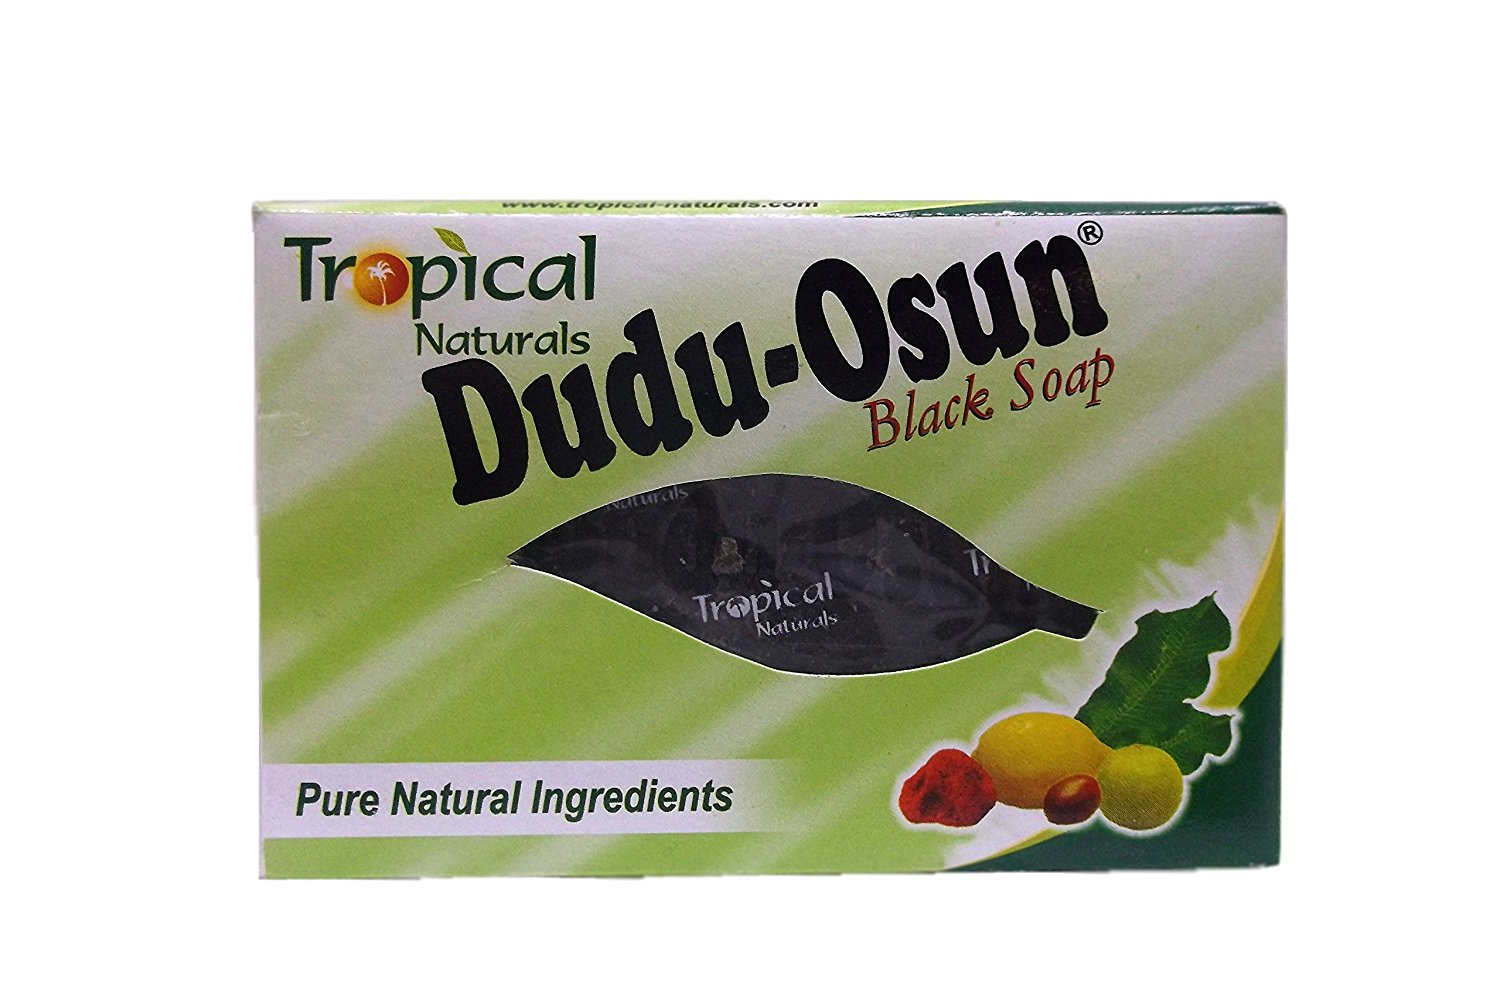 (12 Bars) NEW Tropical Naturals Dudu Osun African Black Soap in Convenient 5.5 oz (150g) Bar Form­All Natural, Eco­Friendly, Antibacterial Ingredients Proven Successful in Treating/Prevention of Acne, Blackheads, Skin Scales, Hemorrhoids and More. BEST PRICE ON AMAZON.COM! Best Soap for Carpenters,